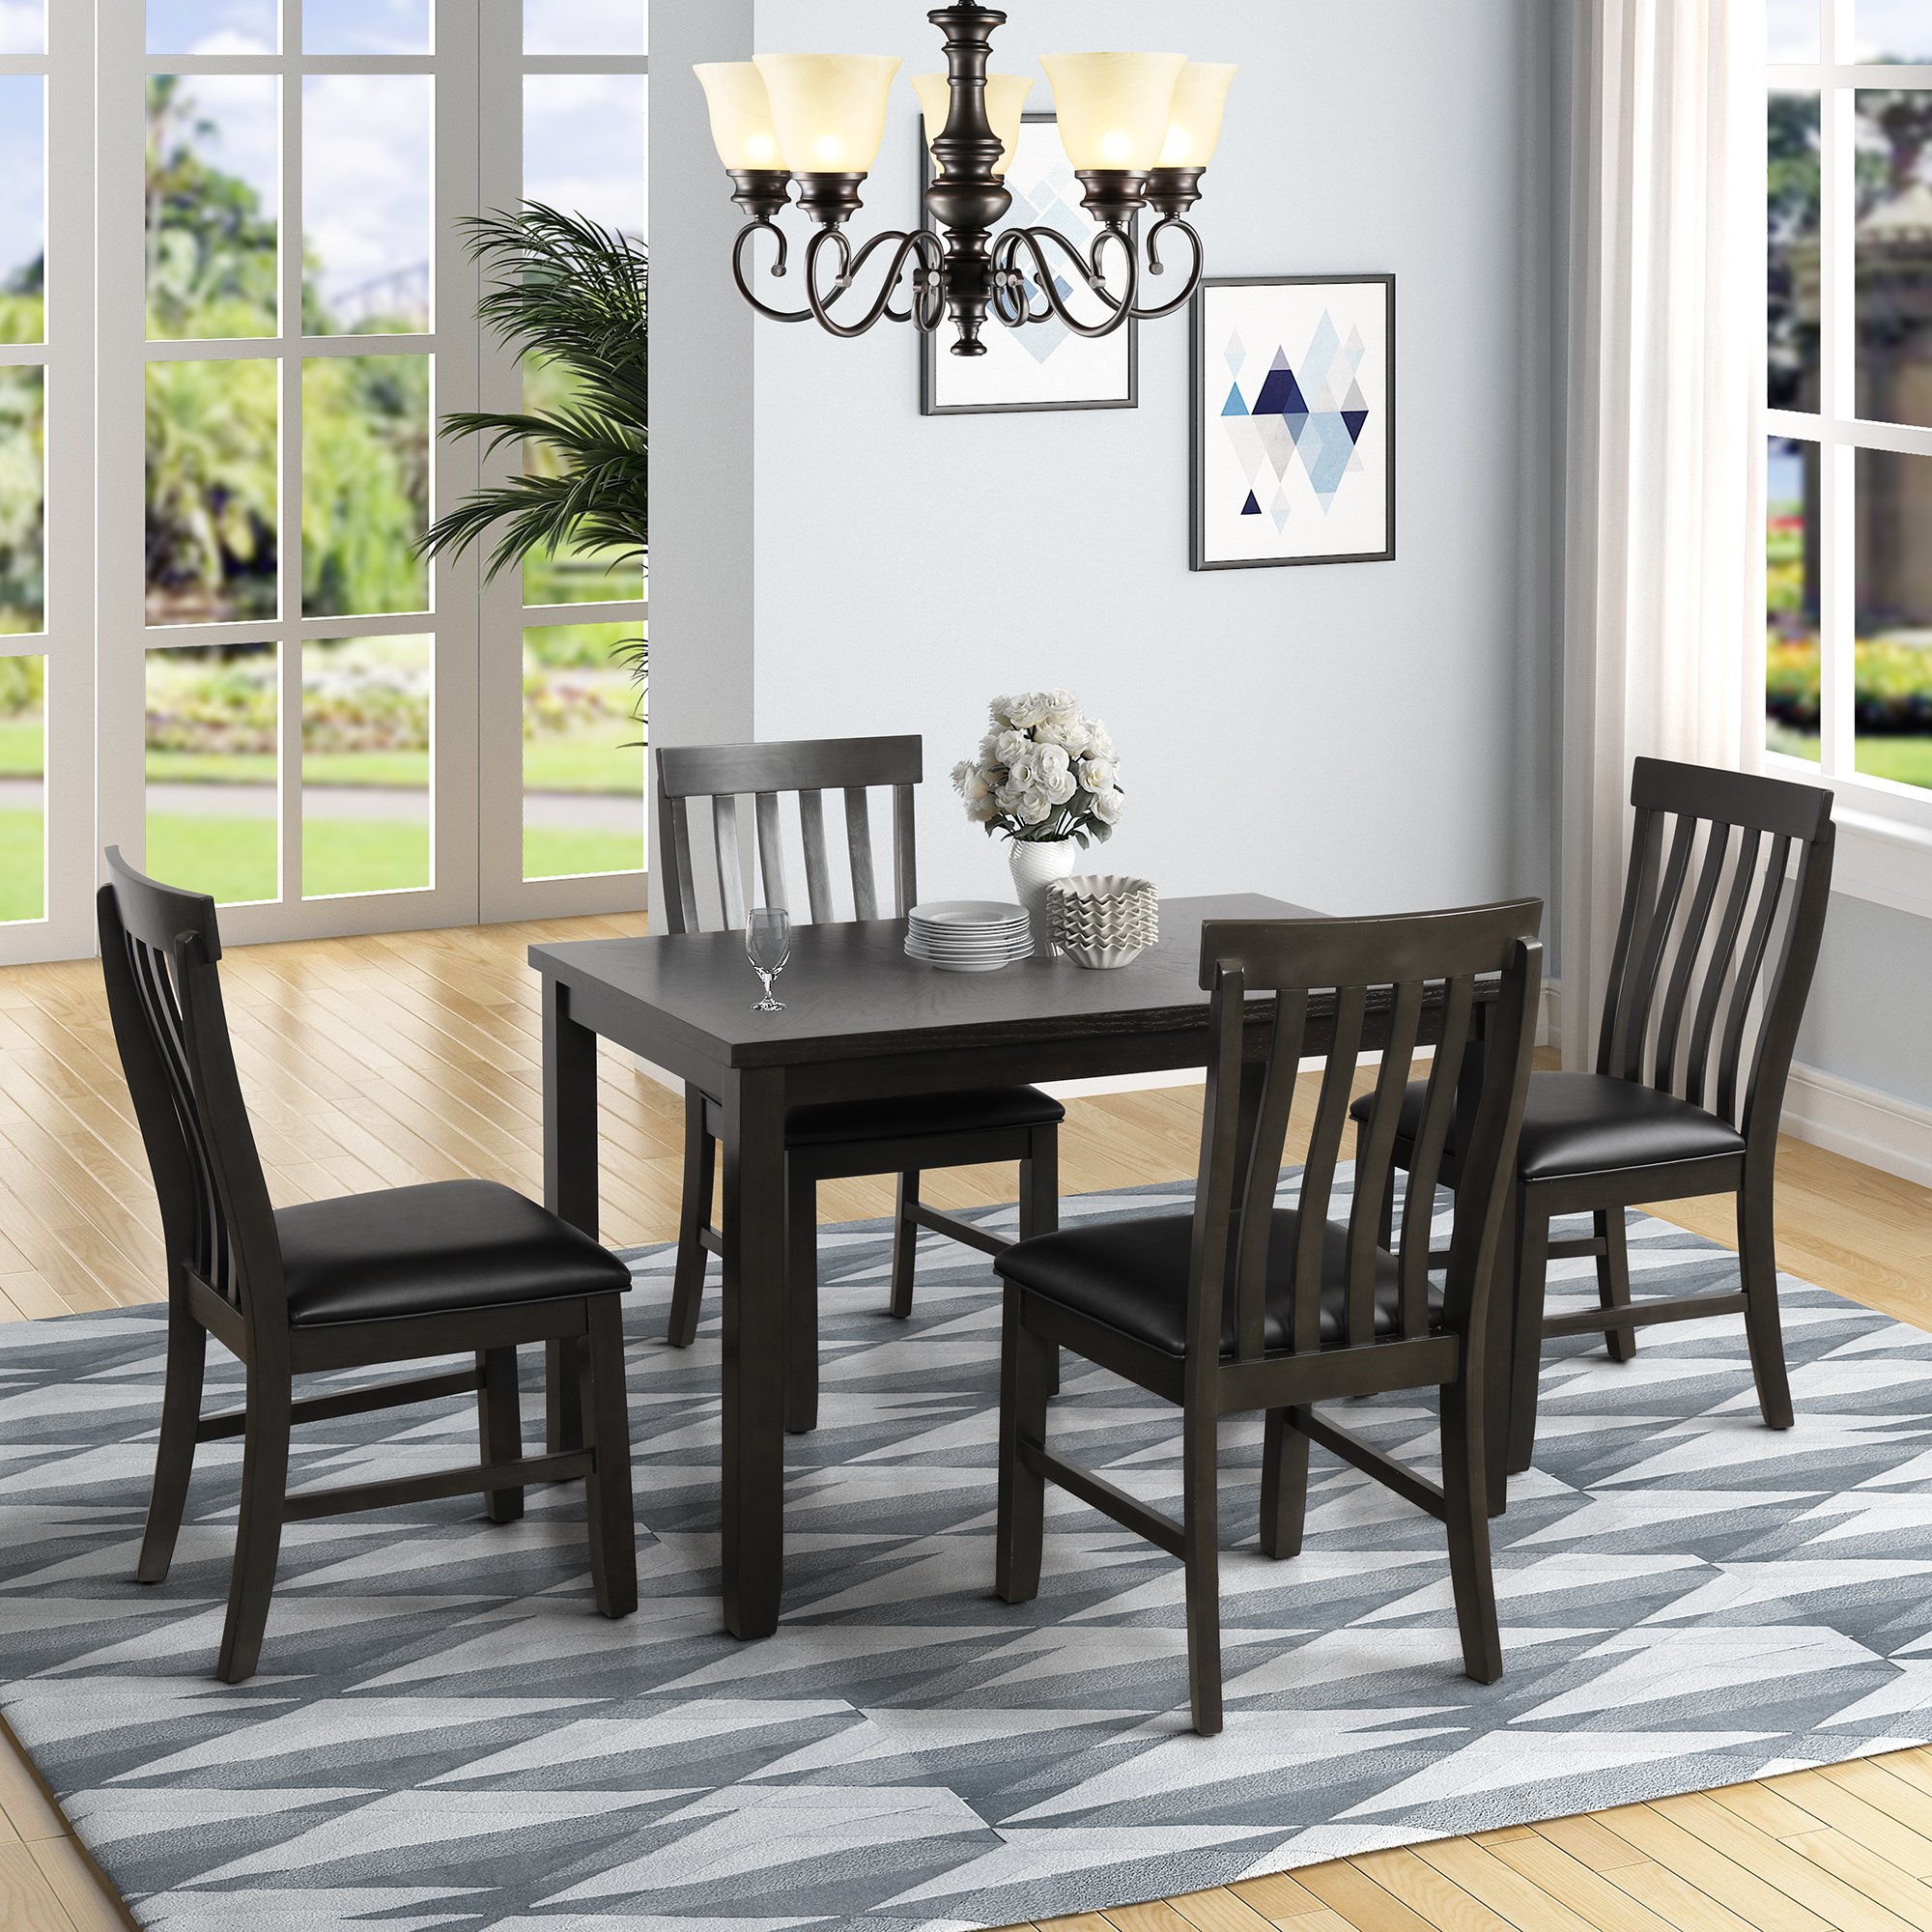 Clearance! Kitchen Dining Table Set, 5 Piece Rectangular ...